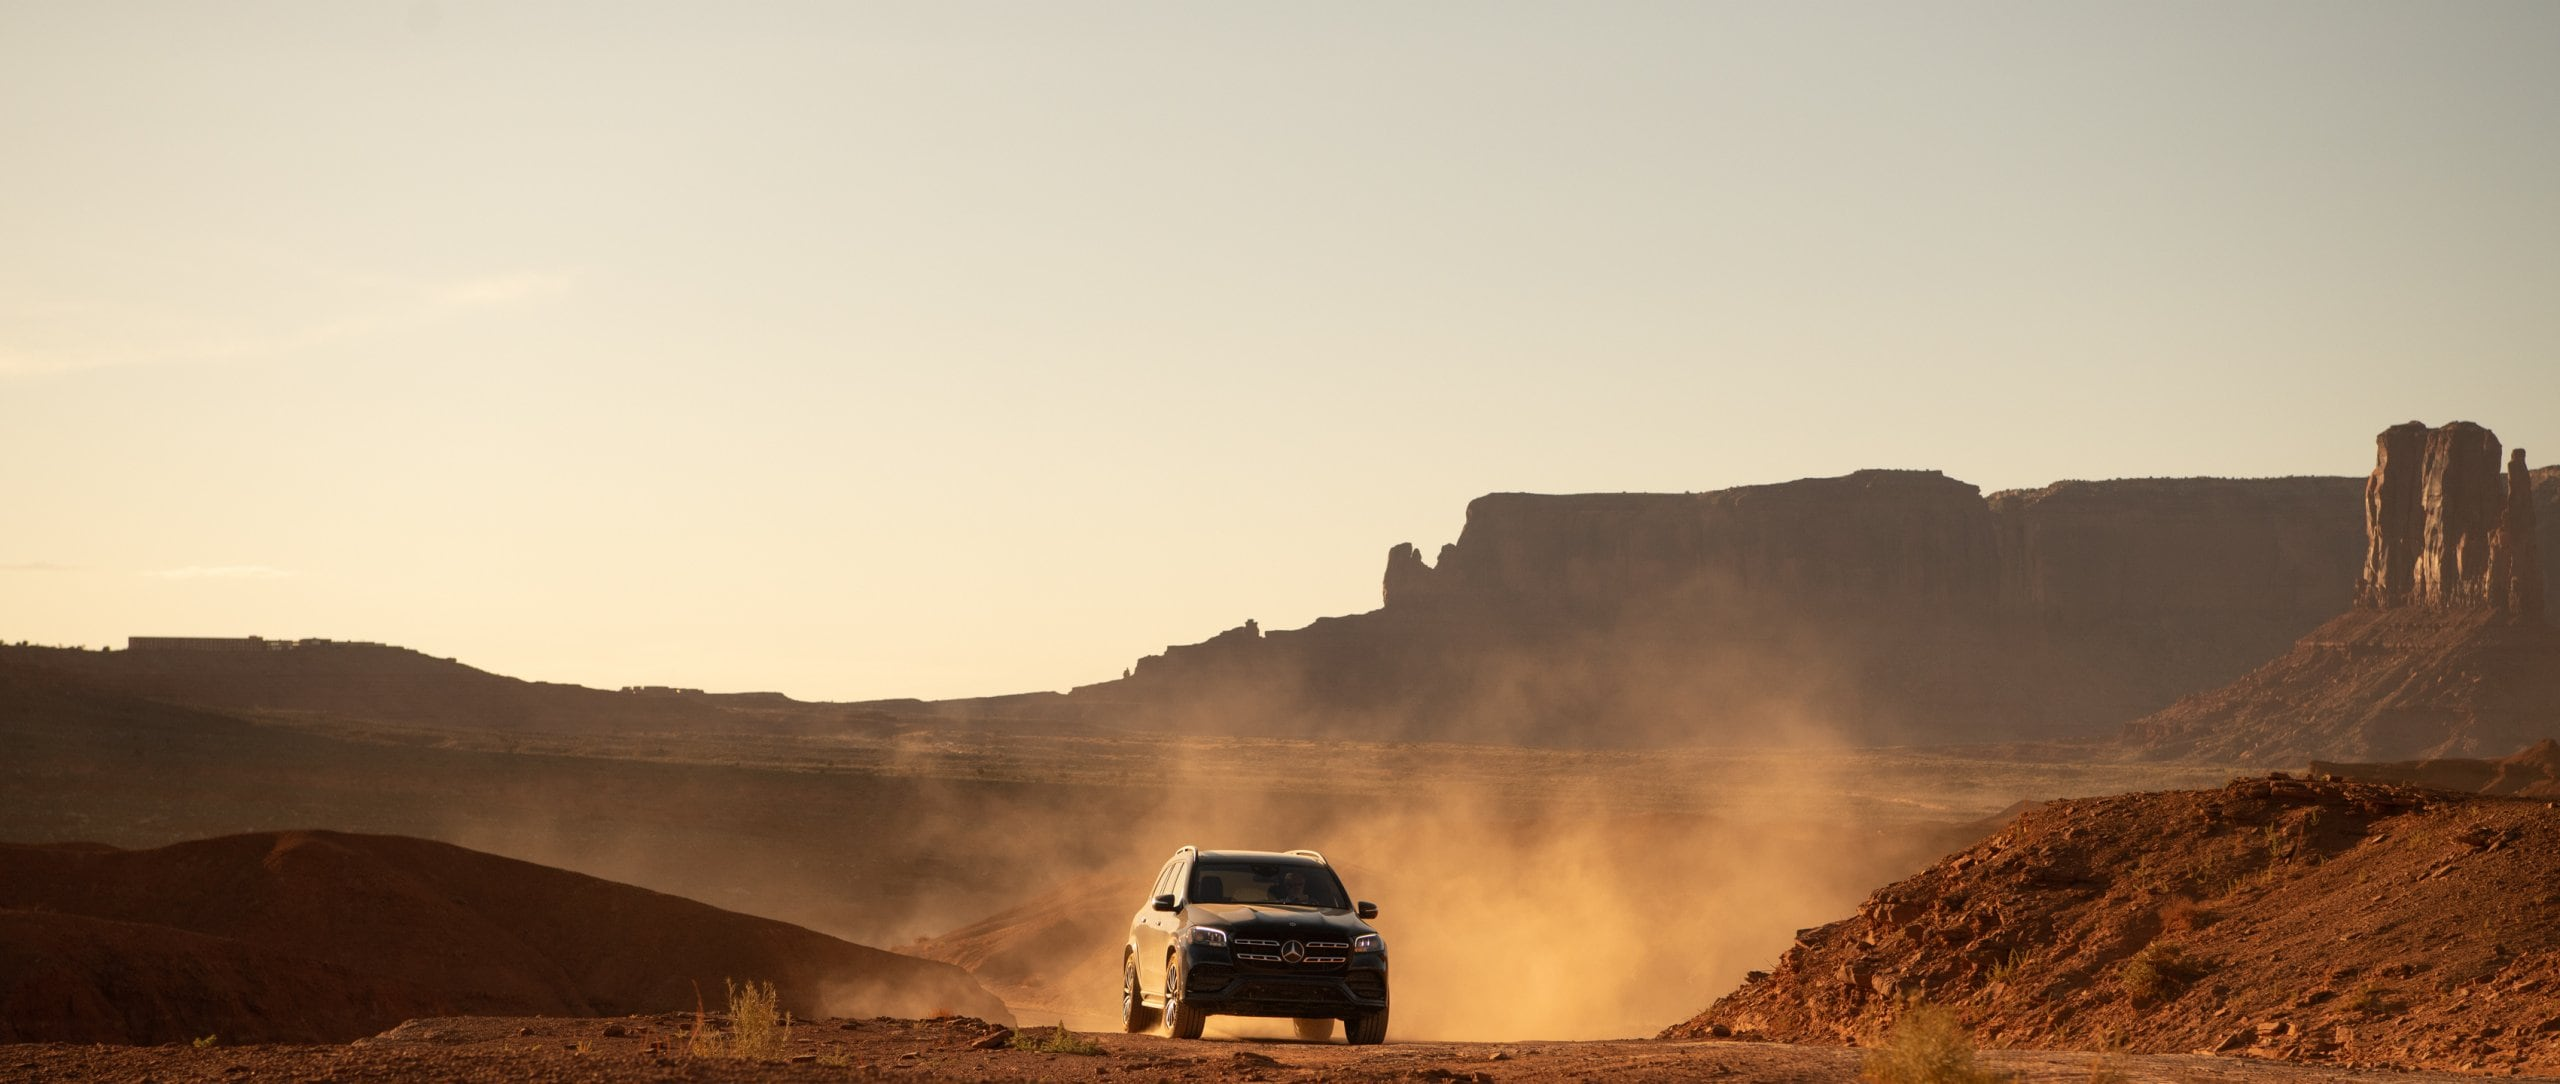 Going off-road: in the GLS through Monument Valley.